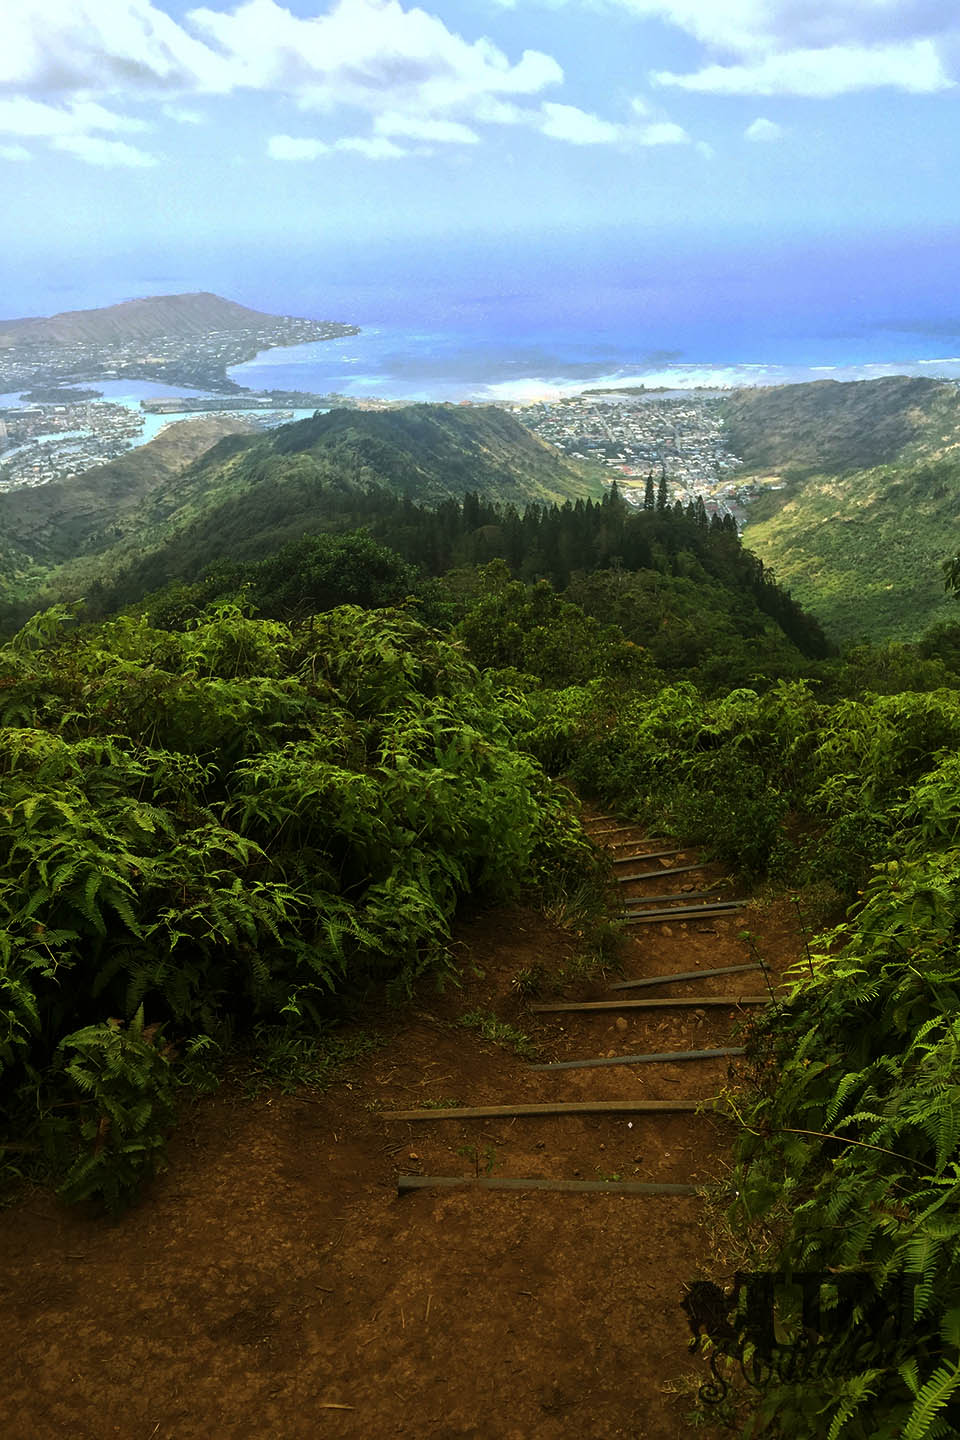 The view from the Kuliouou: Hawai'i Kai from above, with the Koko Head, blue ocean and the stairs in the foreground